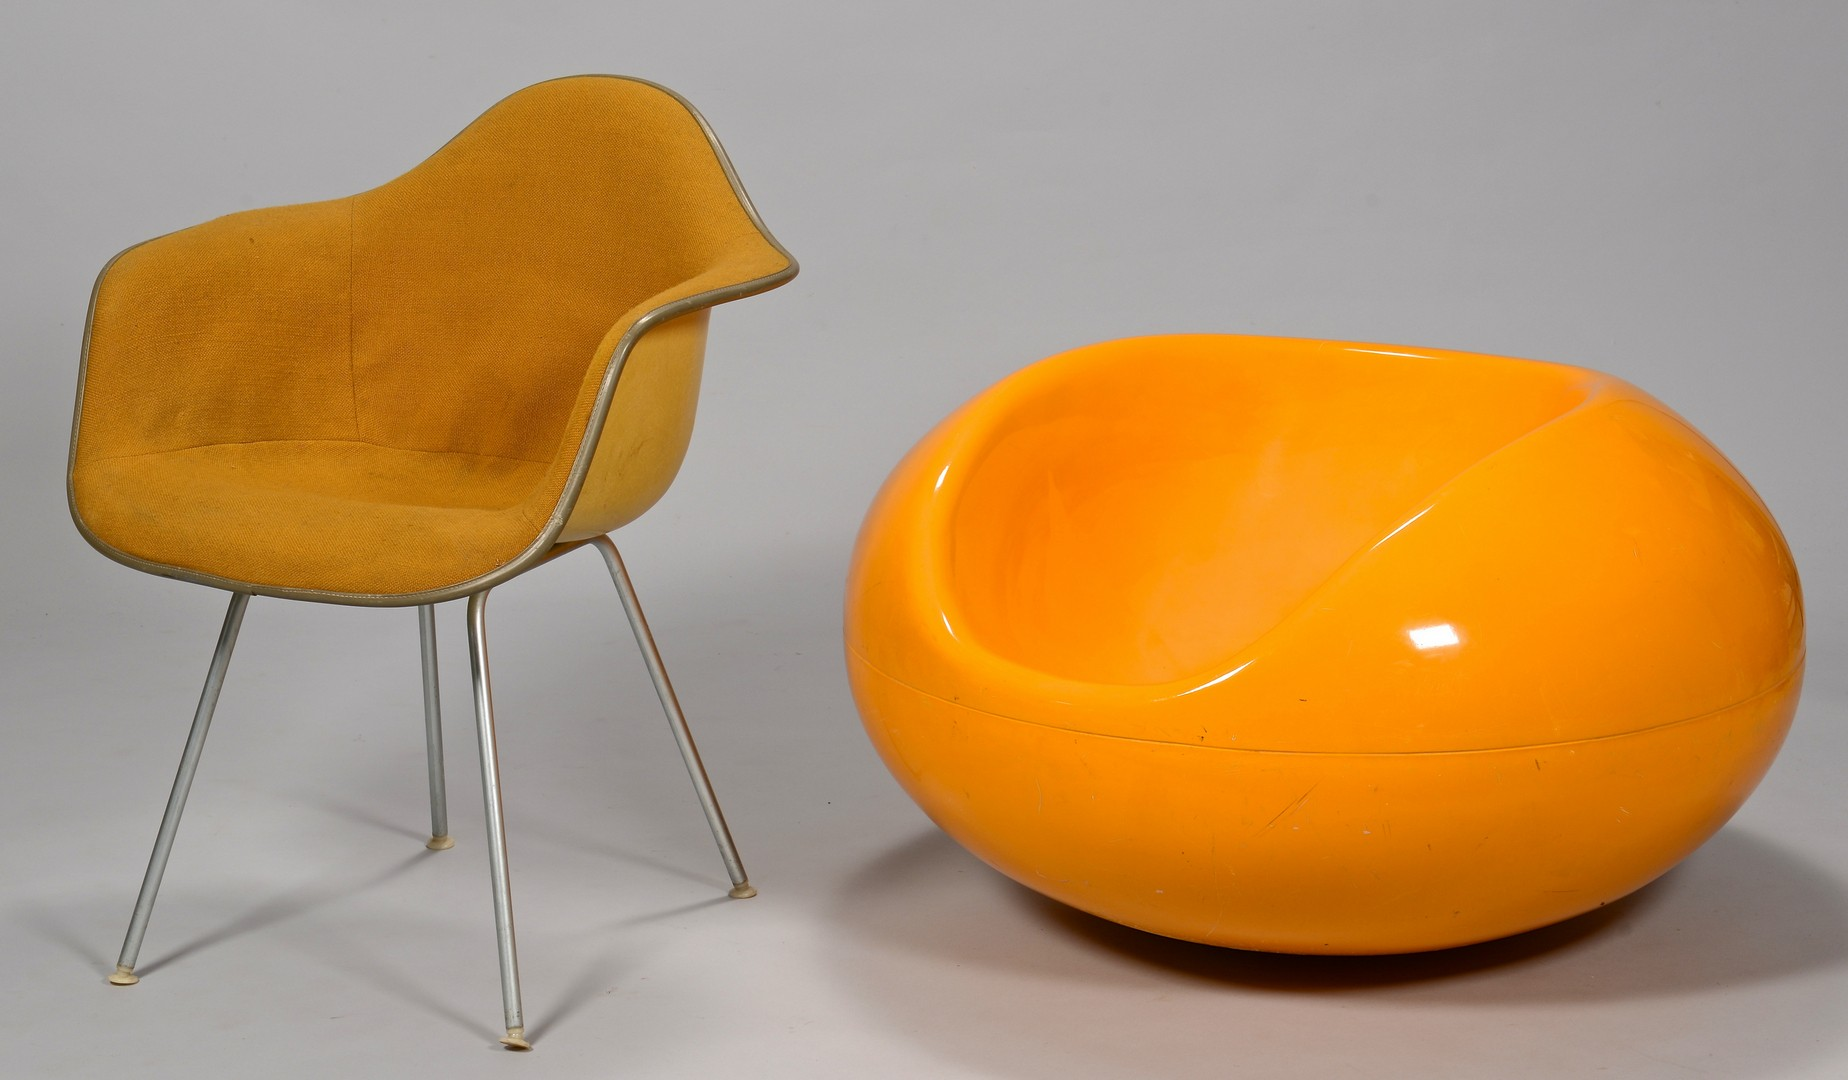 Lot 310: 2 Mid-Century Modern Chairs